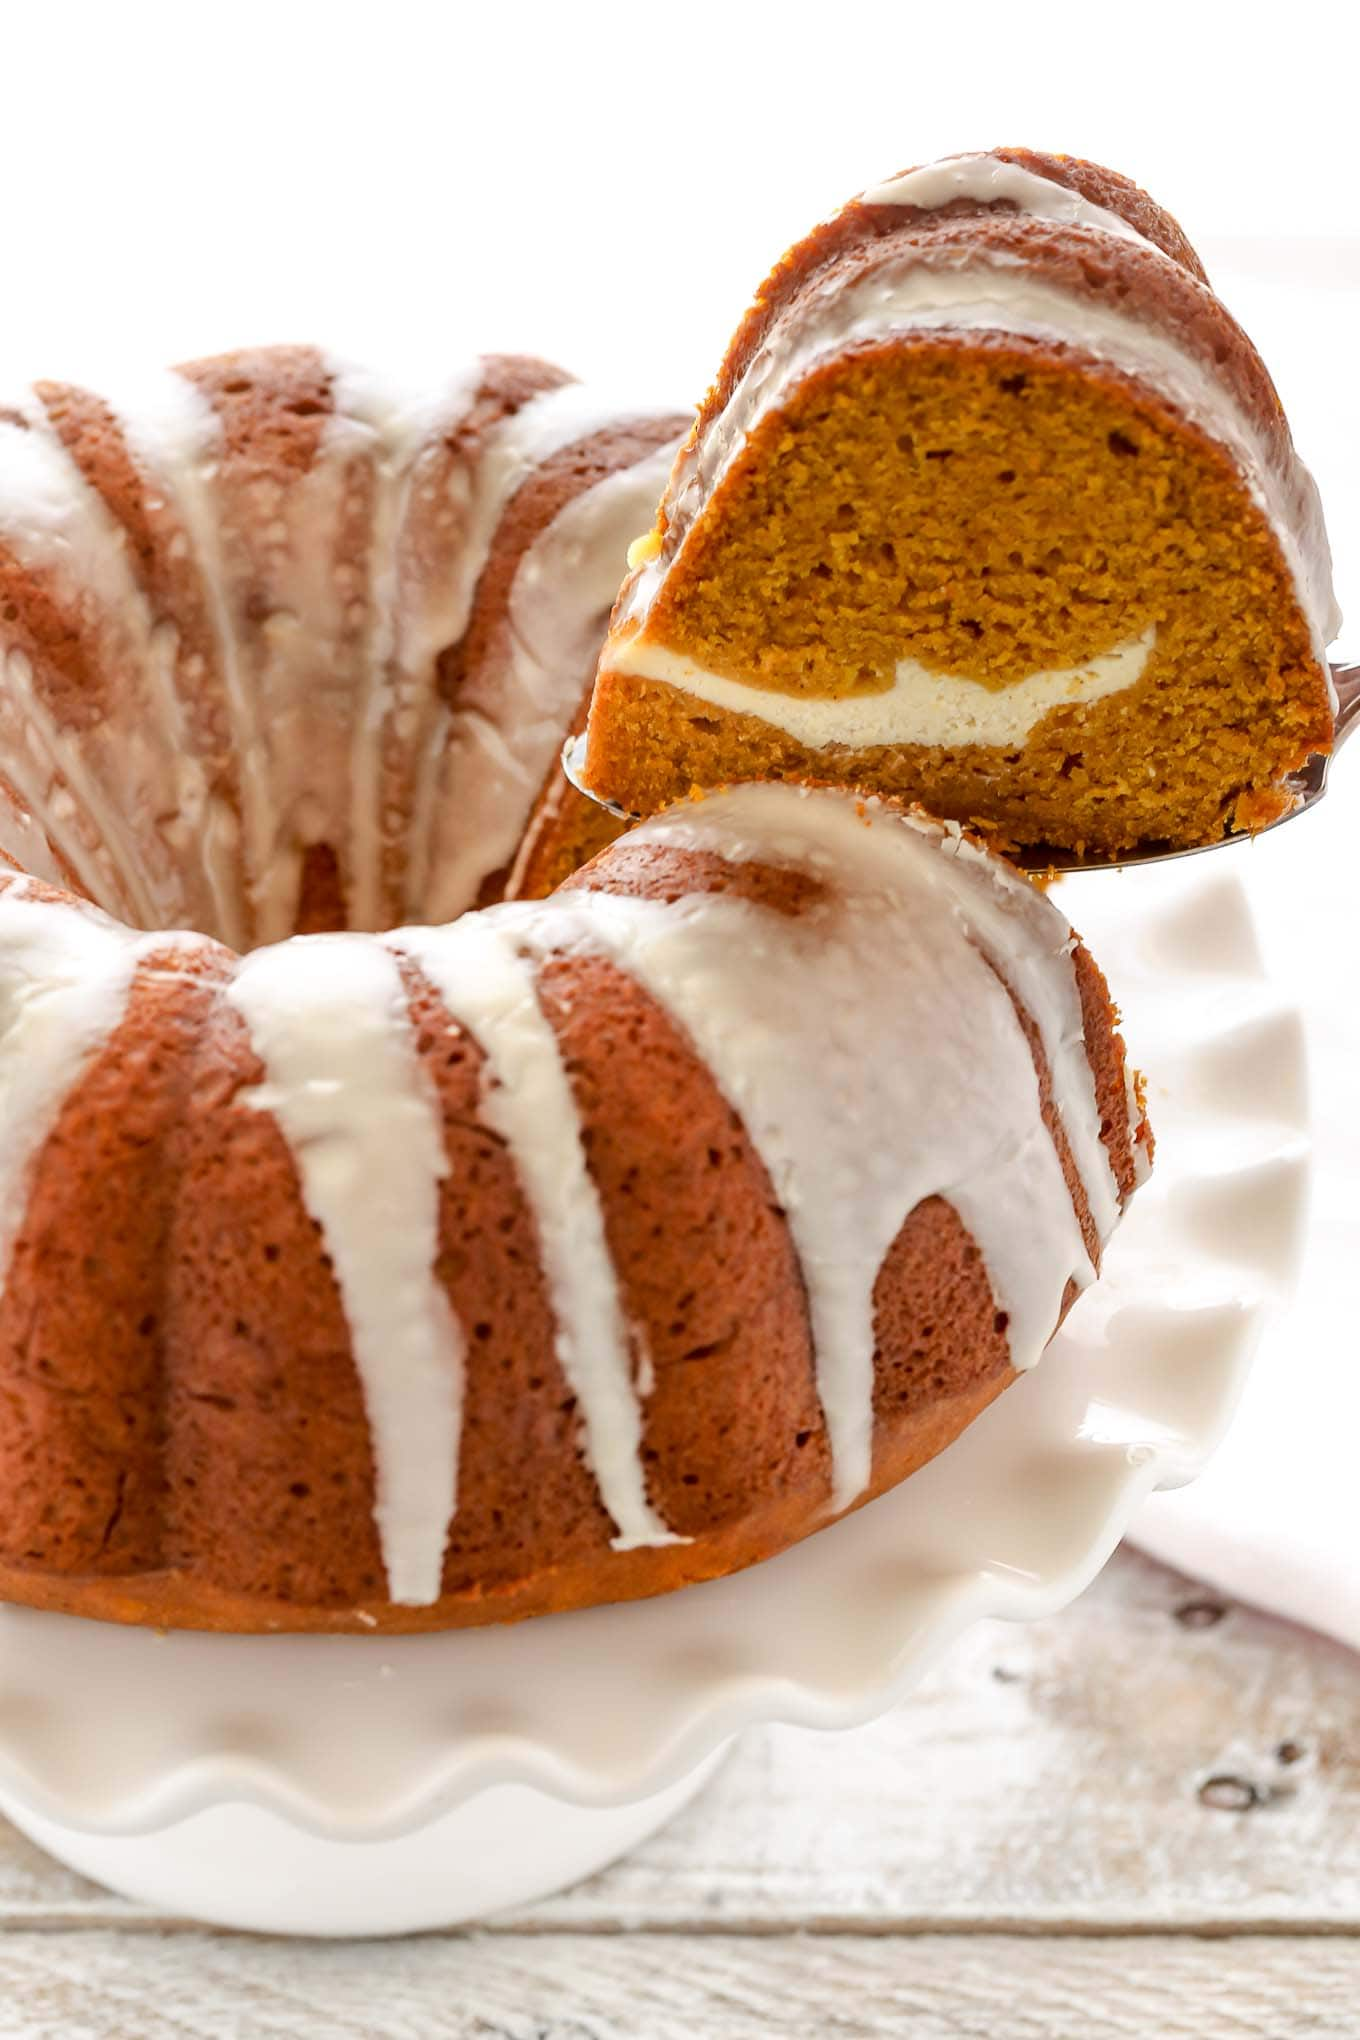 A slice of pumpkin spice bundt cake being removed from a cake stand.